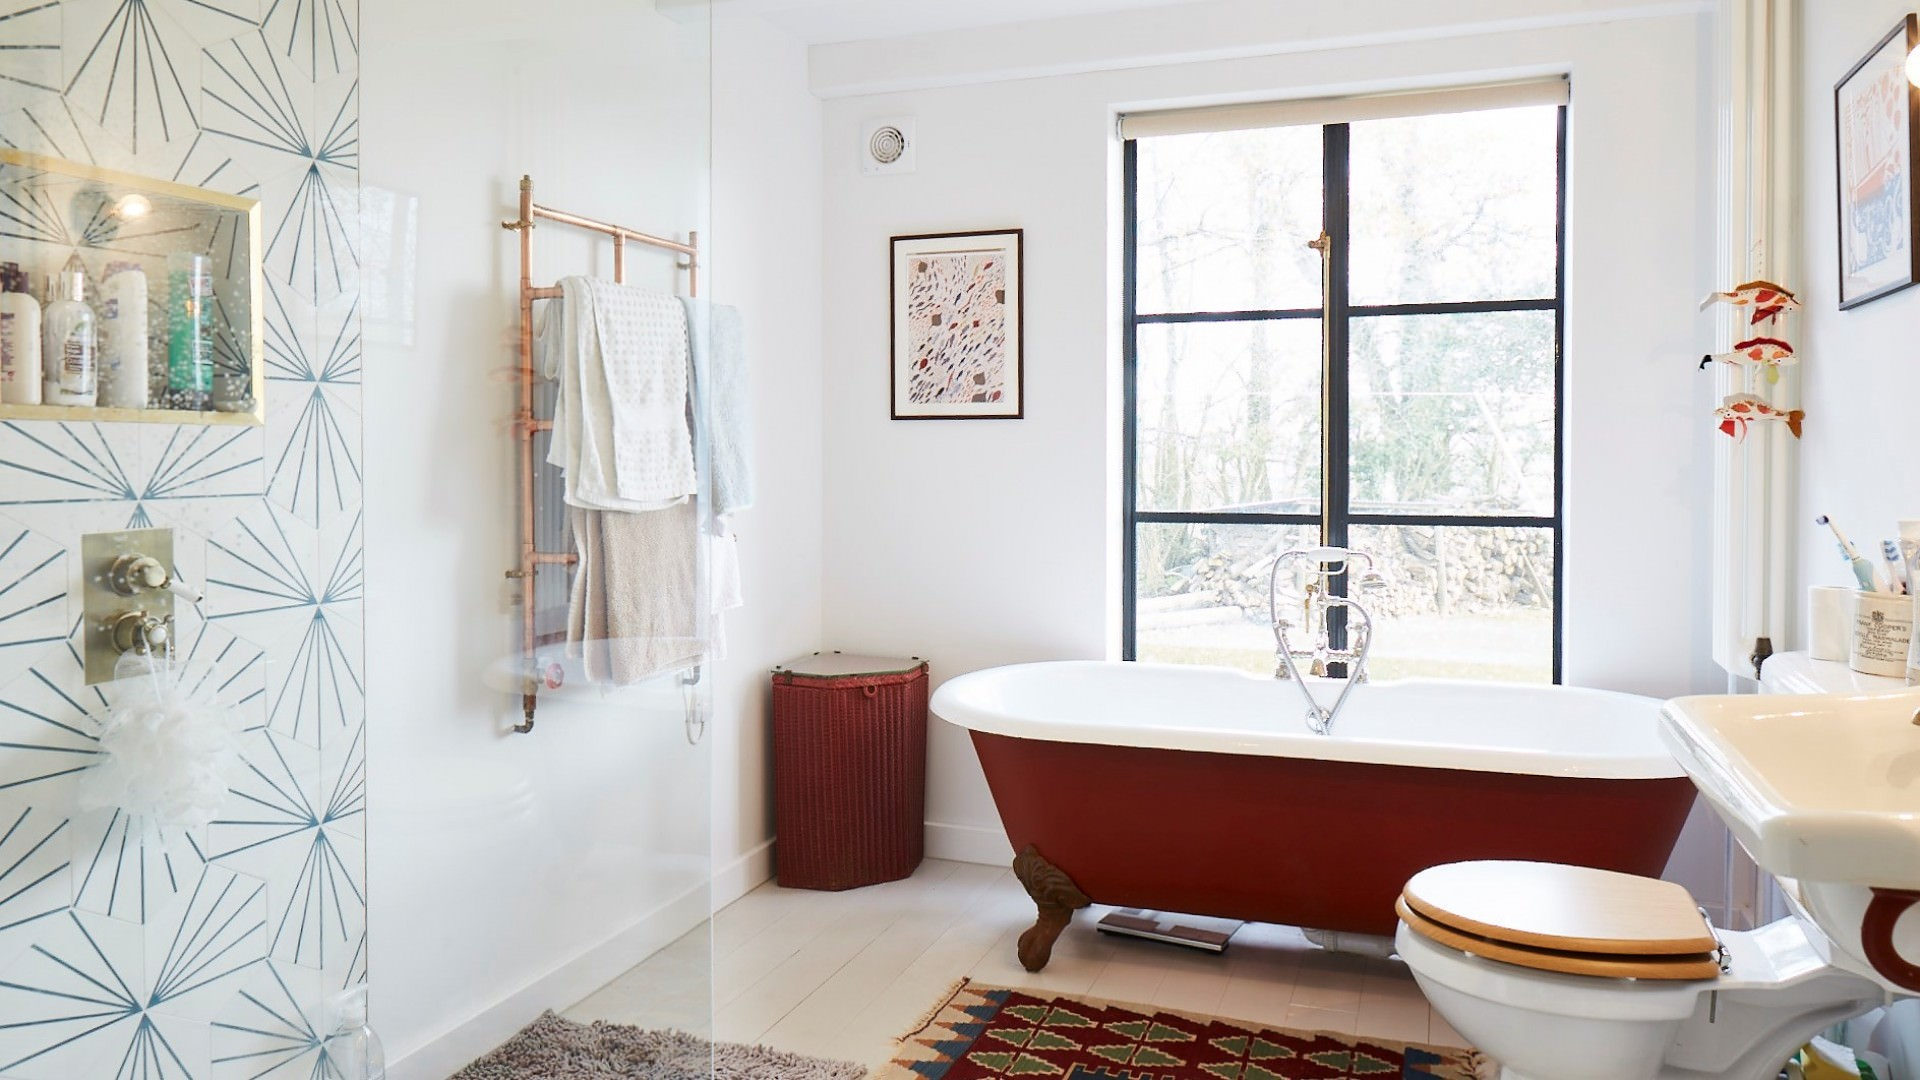 4 architects barn conversion bathroom